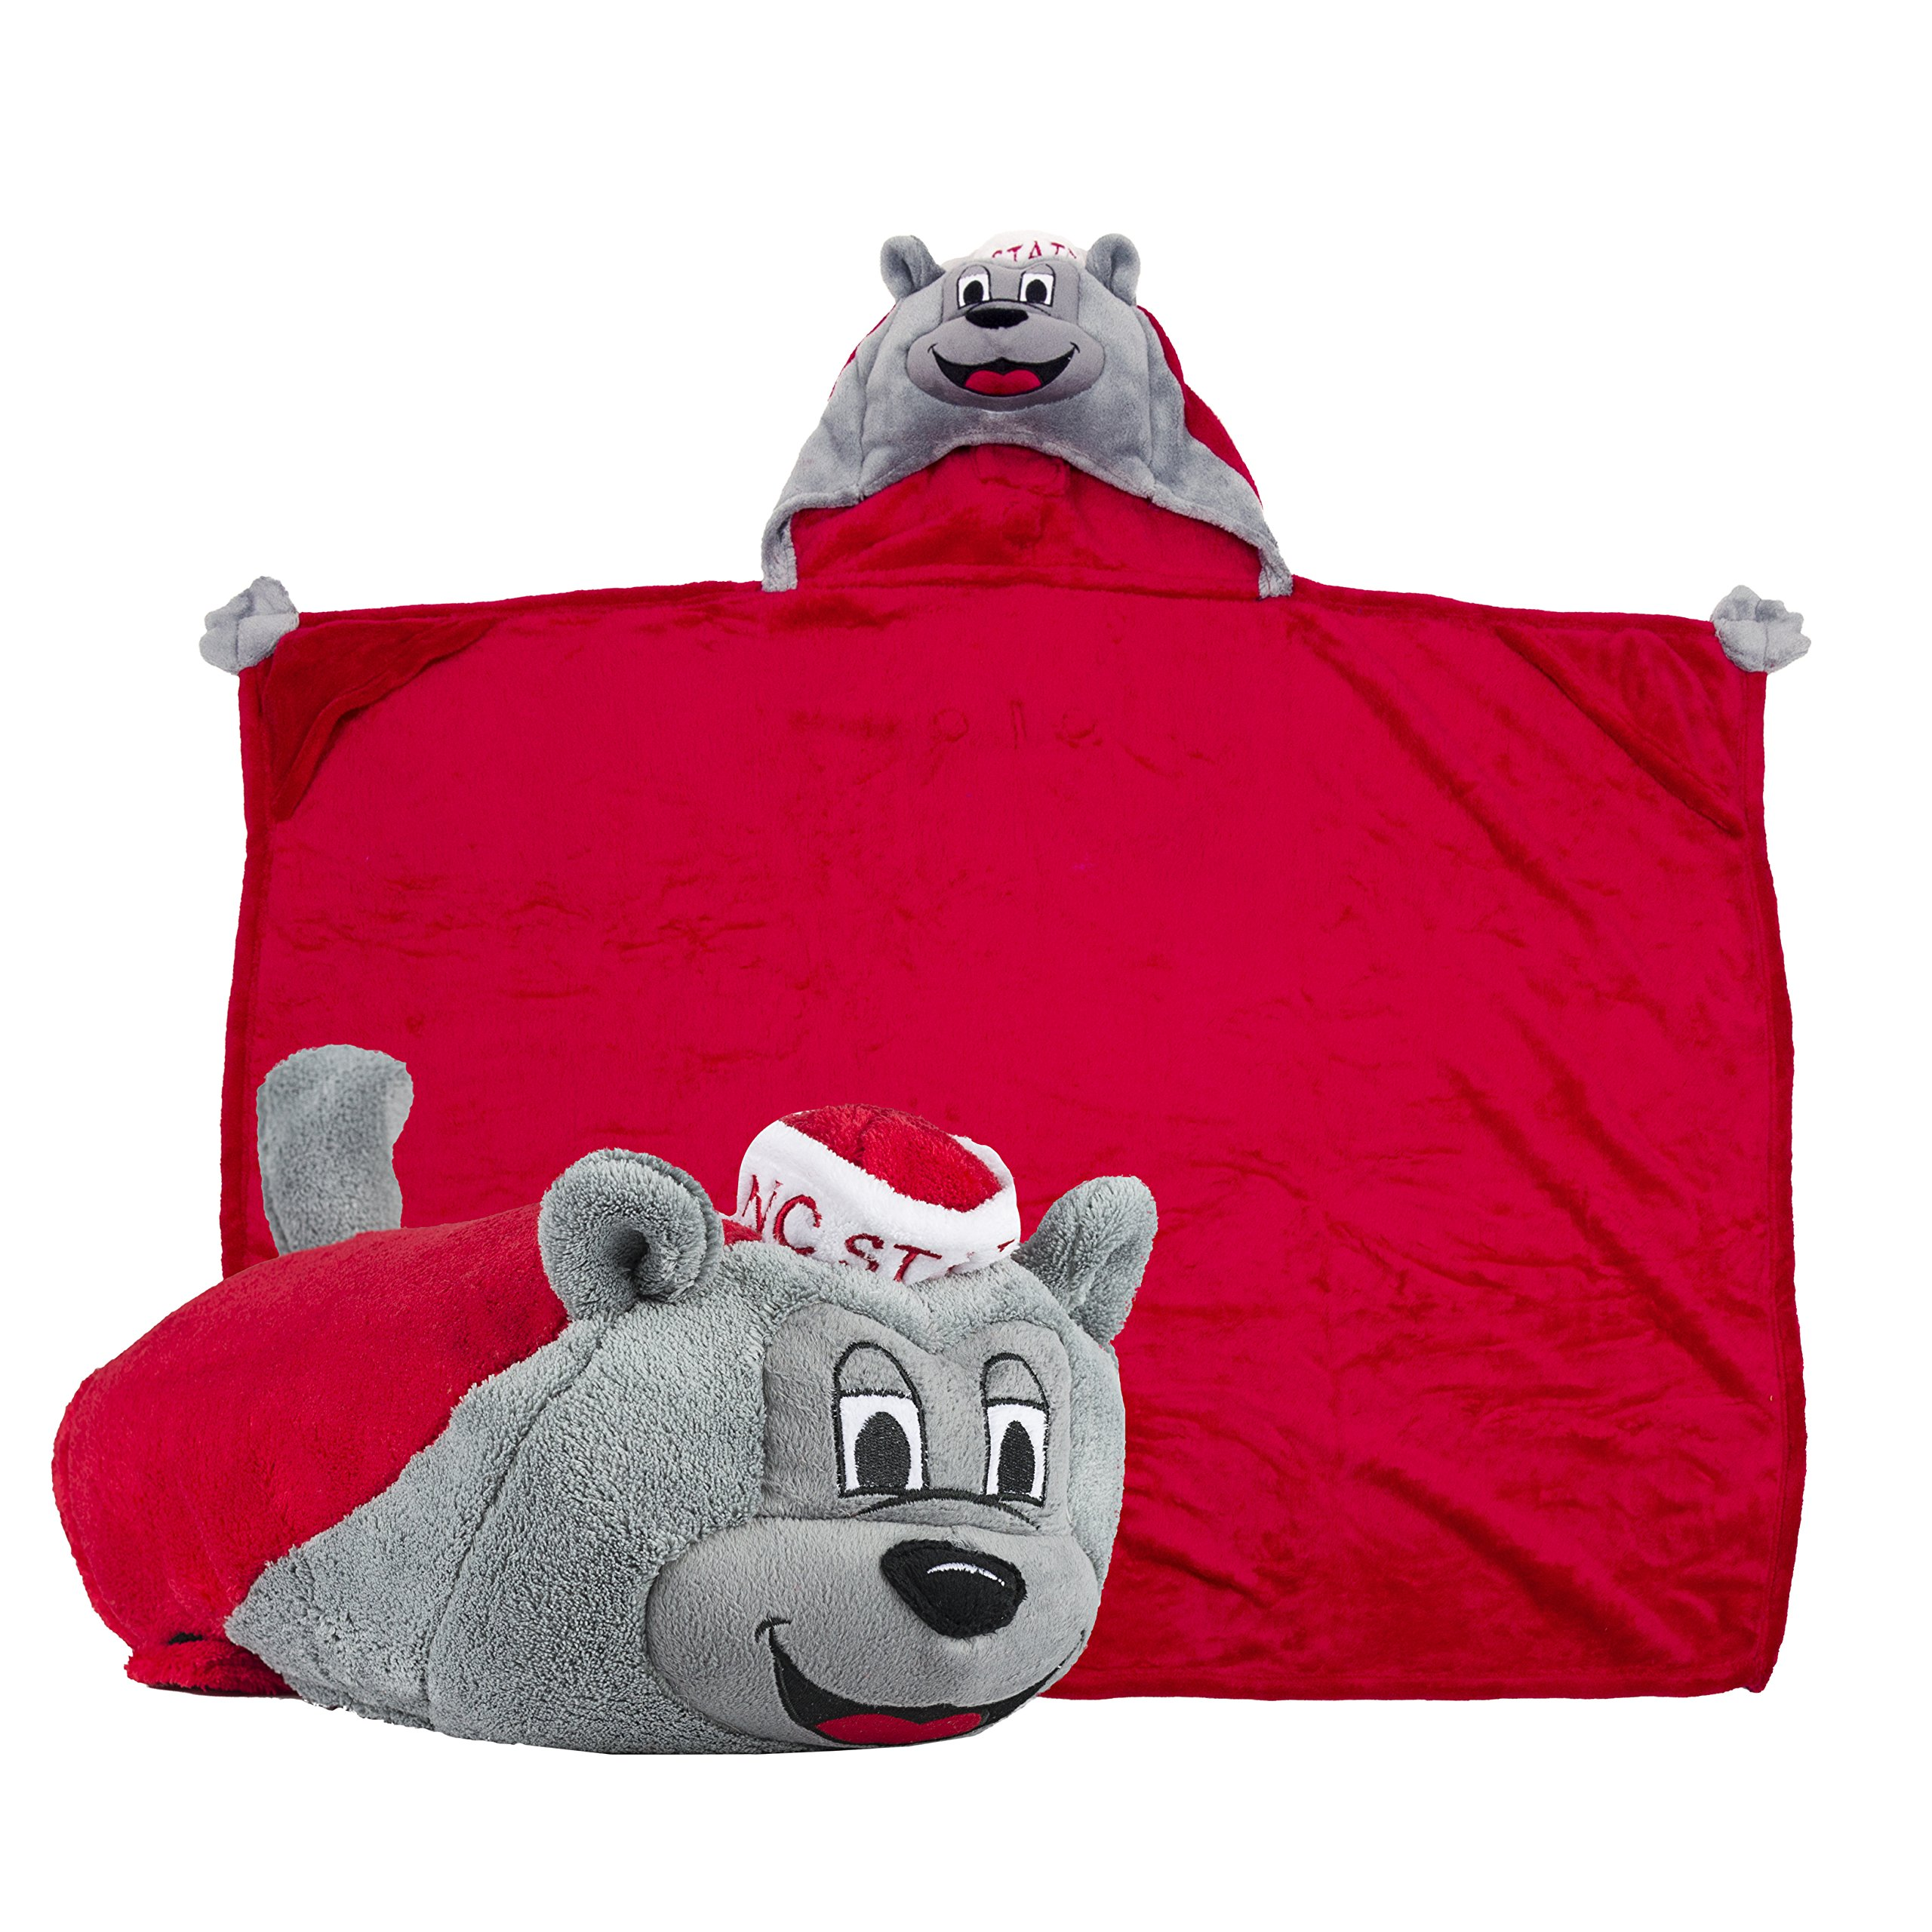 Comfy Critters Stuffed Animal Blanket – College Mascot, NC State University 'Mr. Wuf' – Kids huggable pillow and blanket perfect for the big game, tailgating, pretend play, travel, and much more